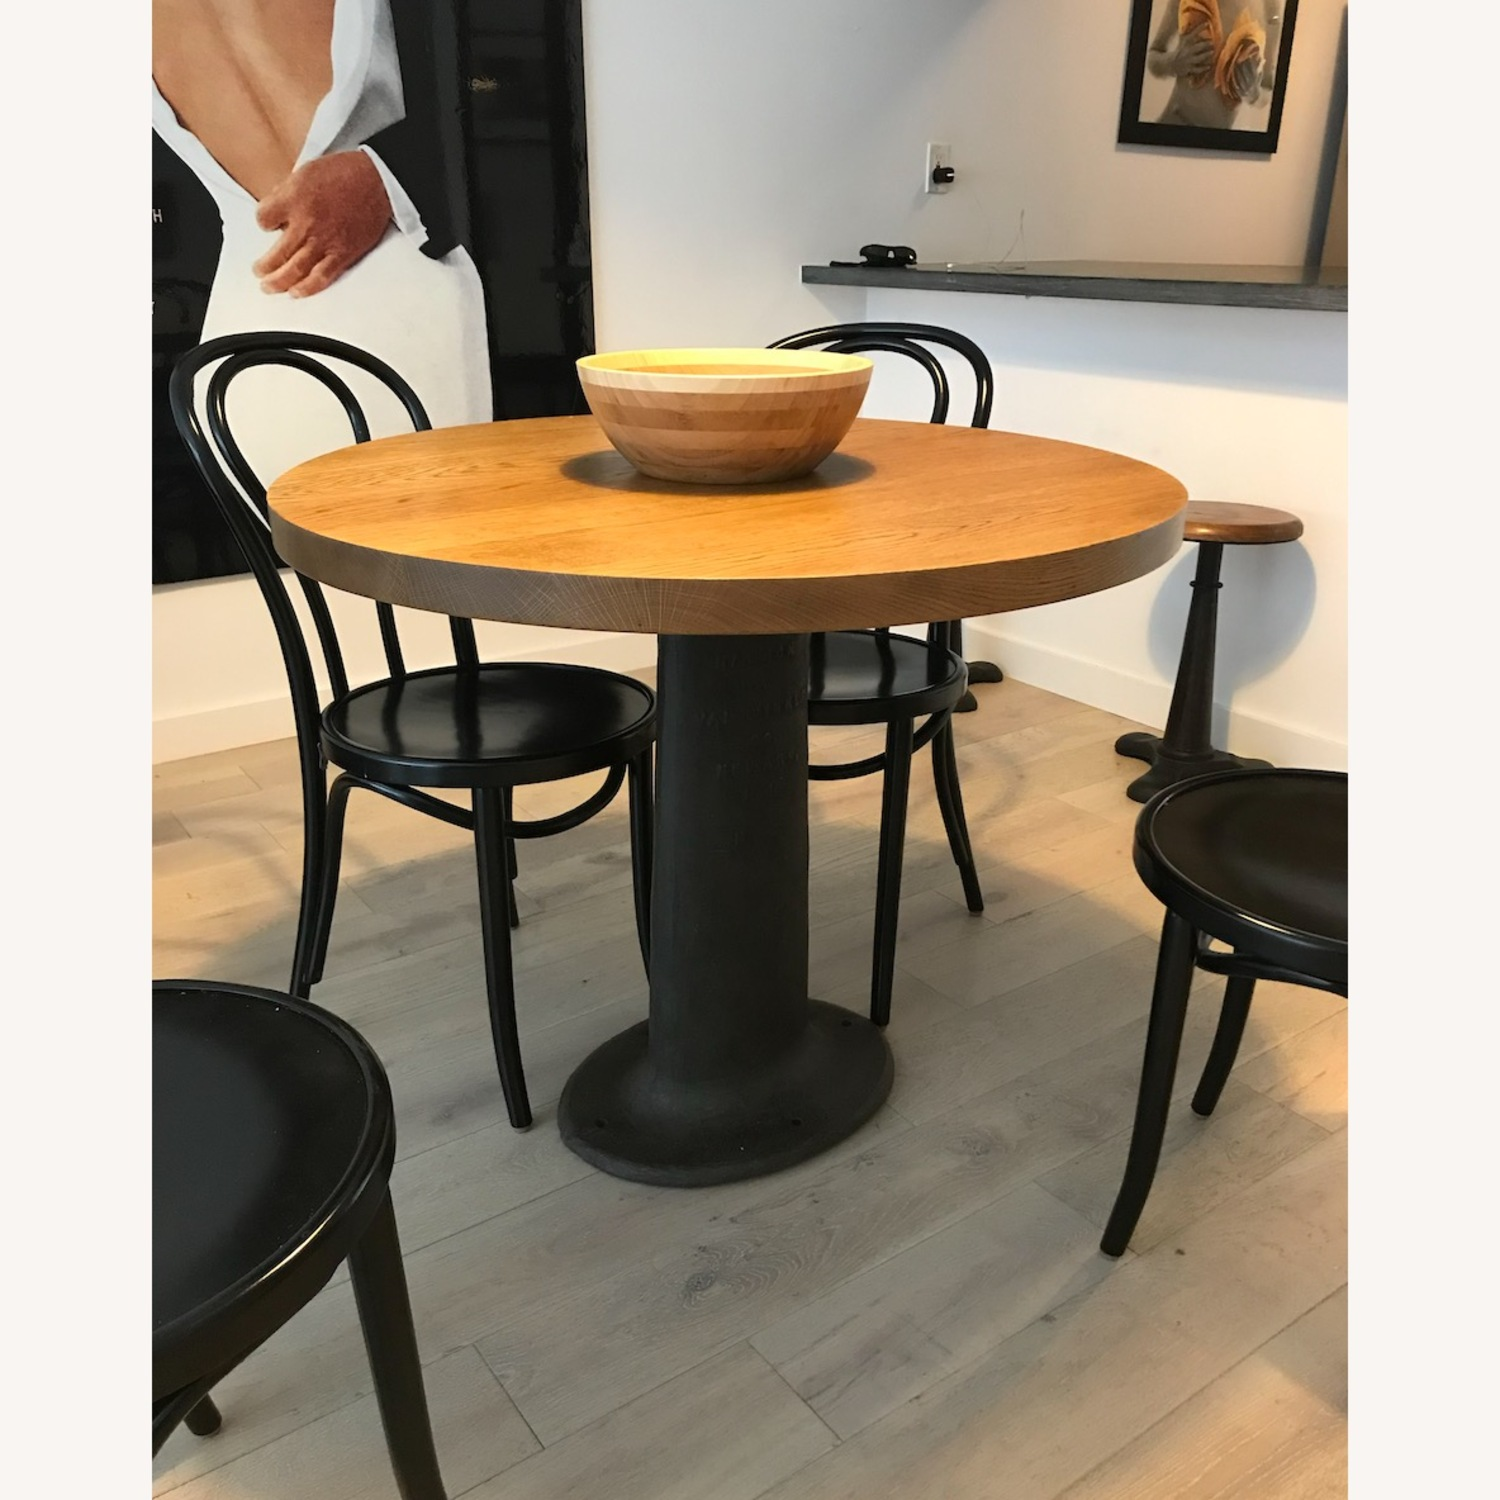 Vintage Wood and Iron Table - image-3